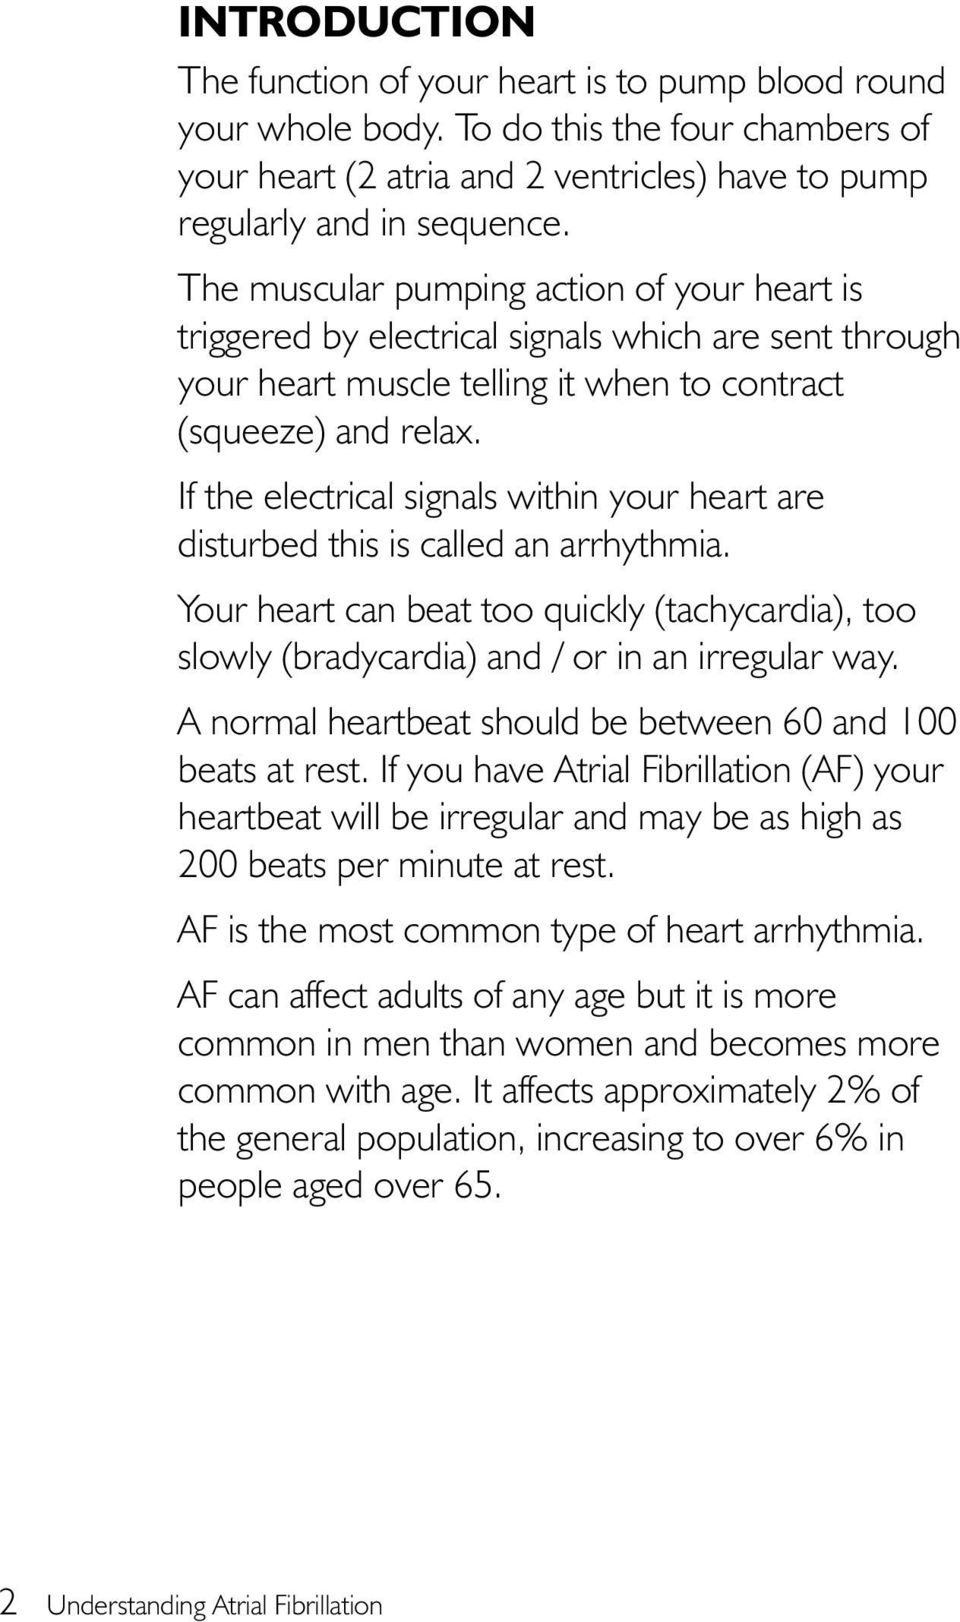 If the electrical signals within your heart are disturbed this is called an arrhythmia. Your heart can beat too quickly (tachycardia), too slowly (bradycardia) and / or in an irregular way.